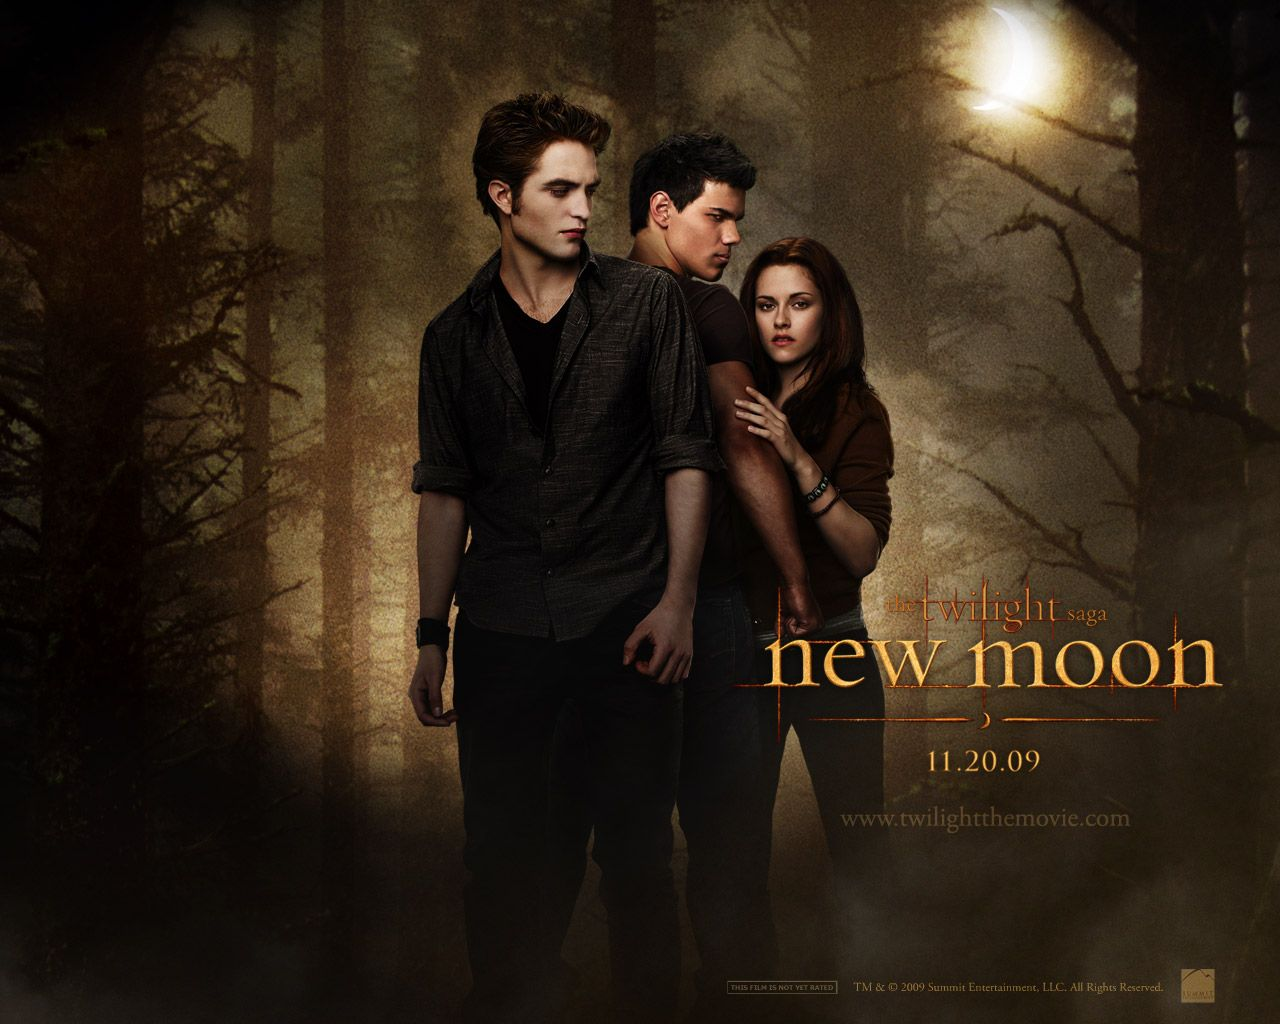 Twilight  Edward  Bella widescreen wallpaper  WideWallpapers Free Twilight Wallpapers  Wallpaper  1280x1024